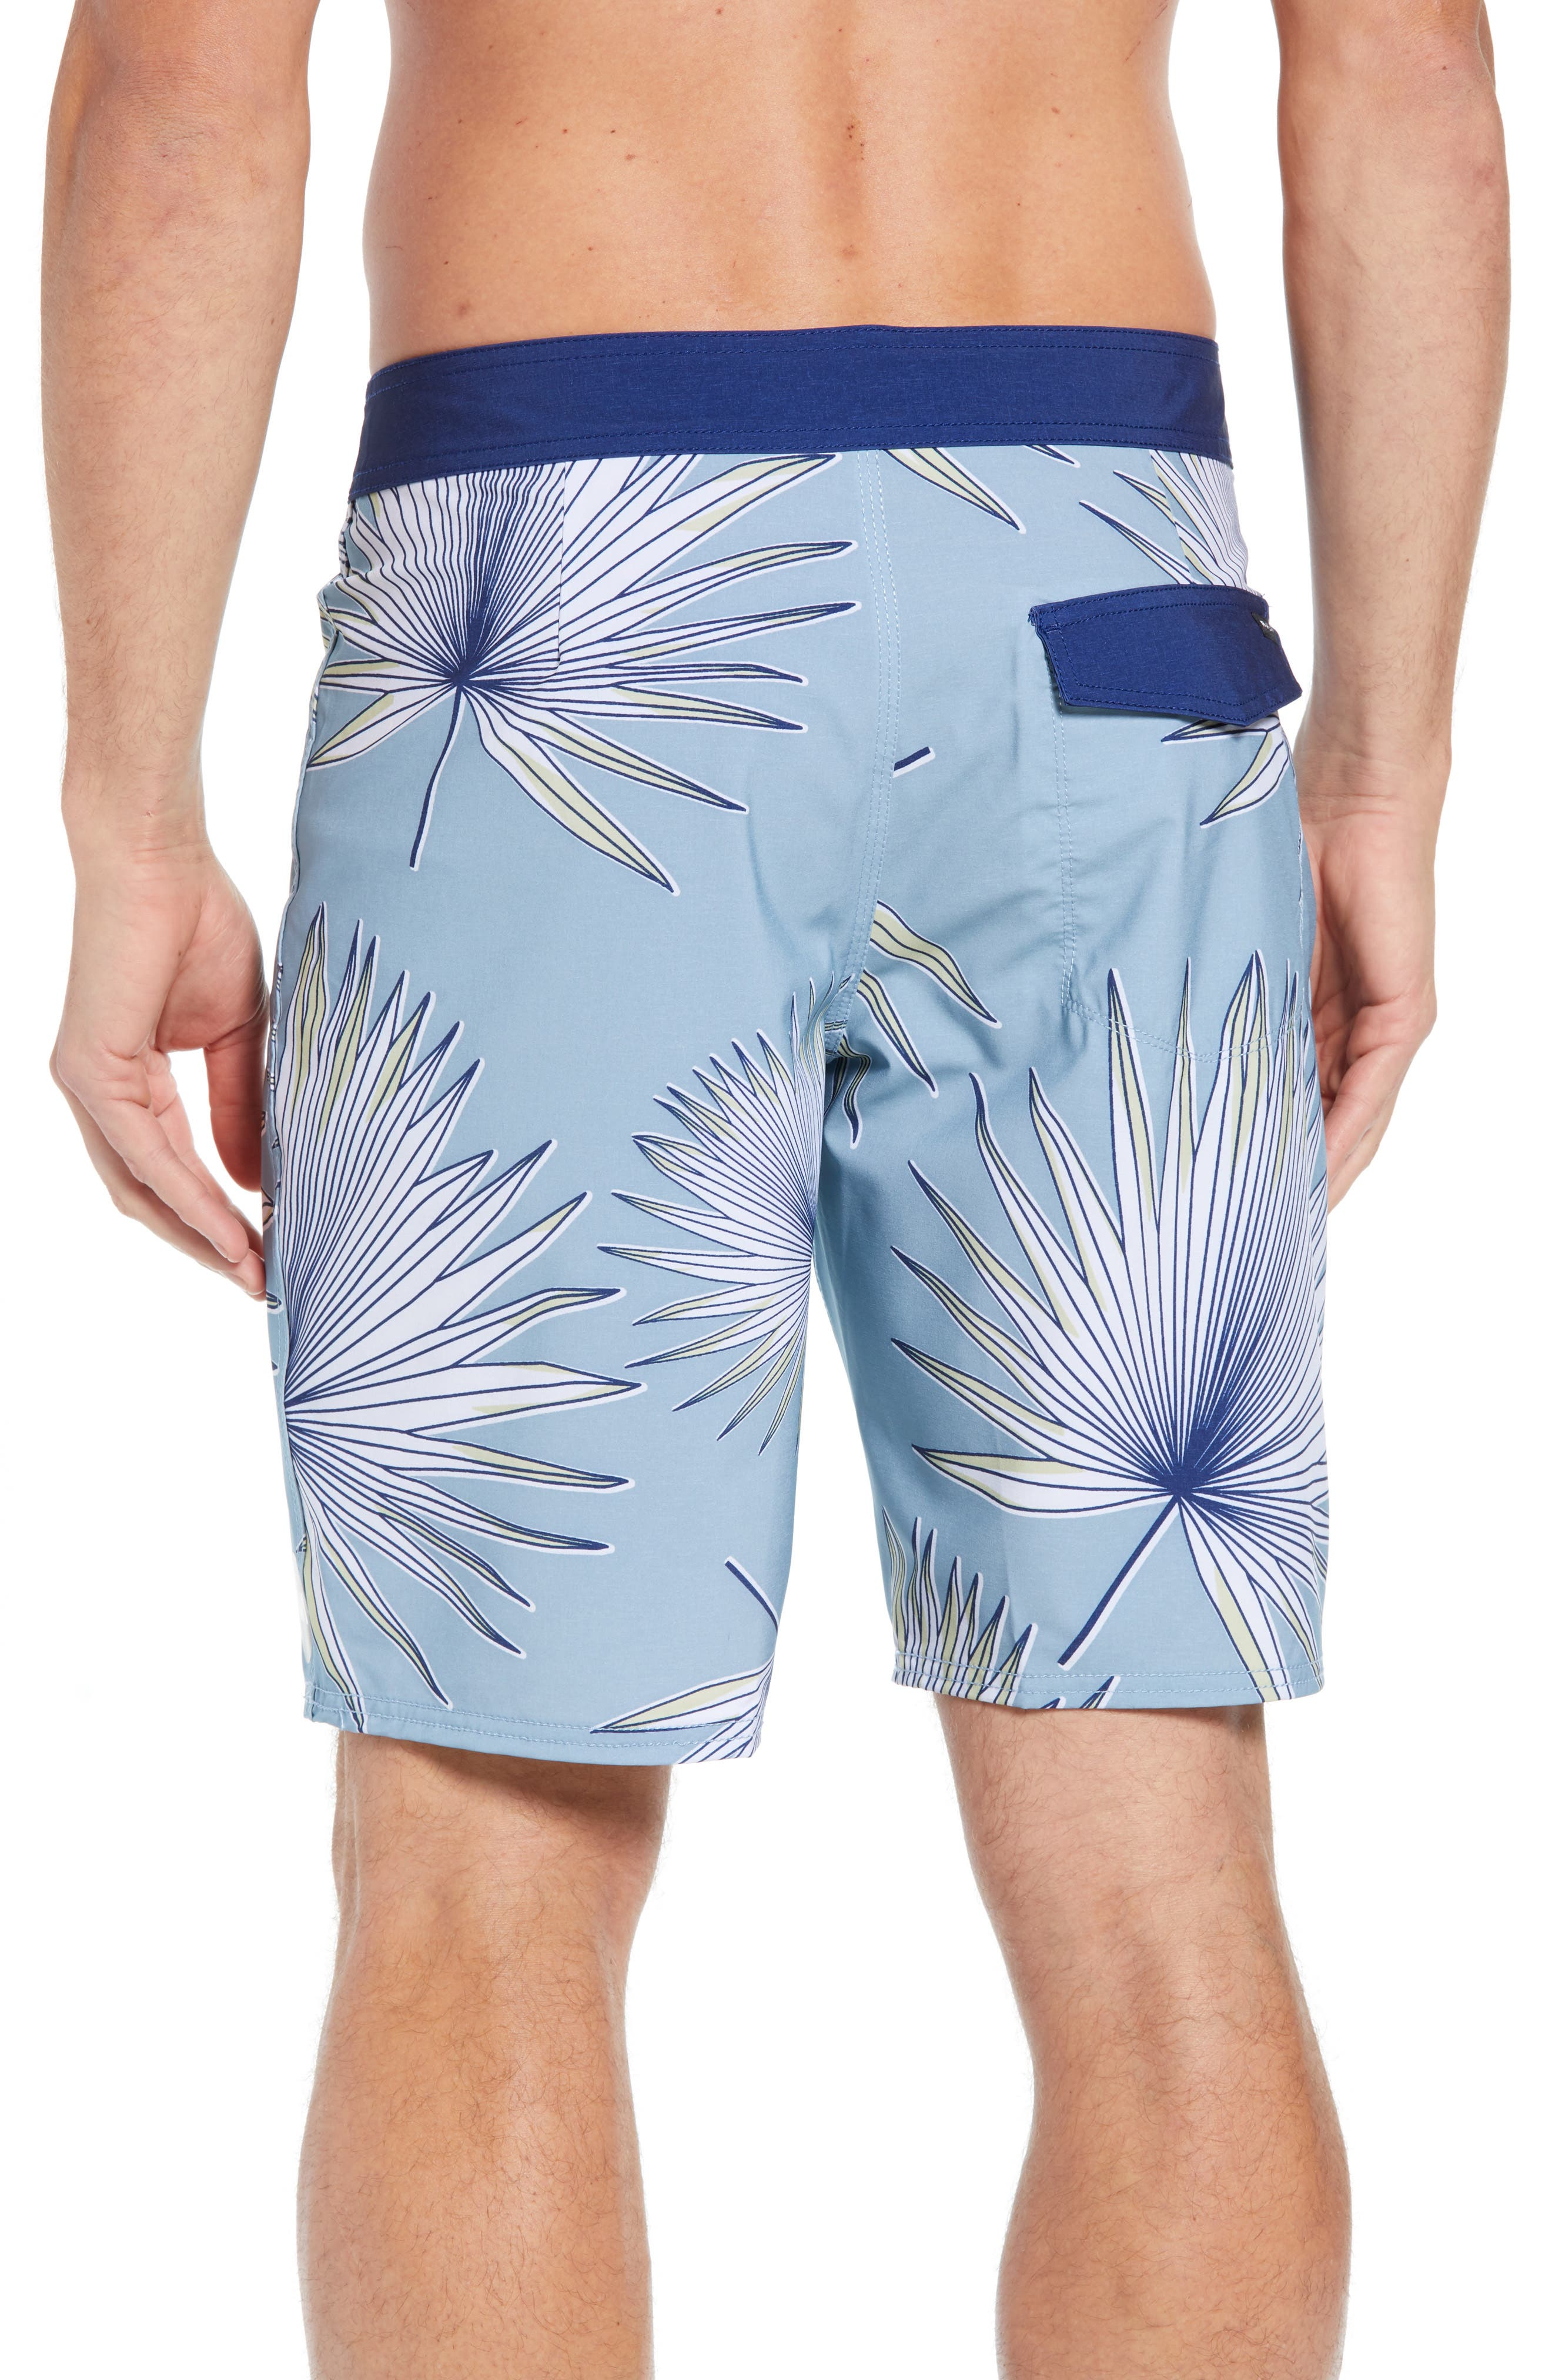 Varca Board Shorts,                             Alternate thumbnail 2, color,                             DUSTY BLUE